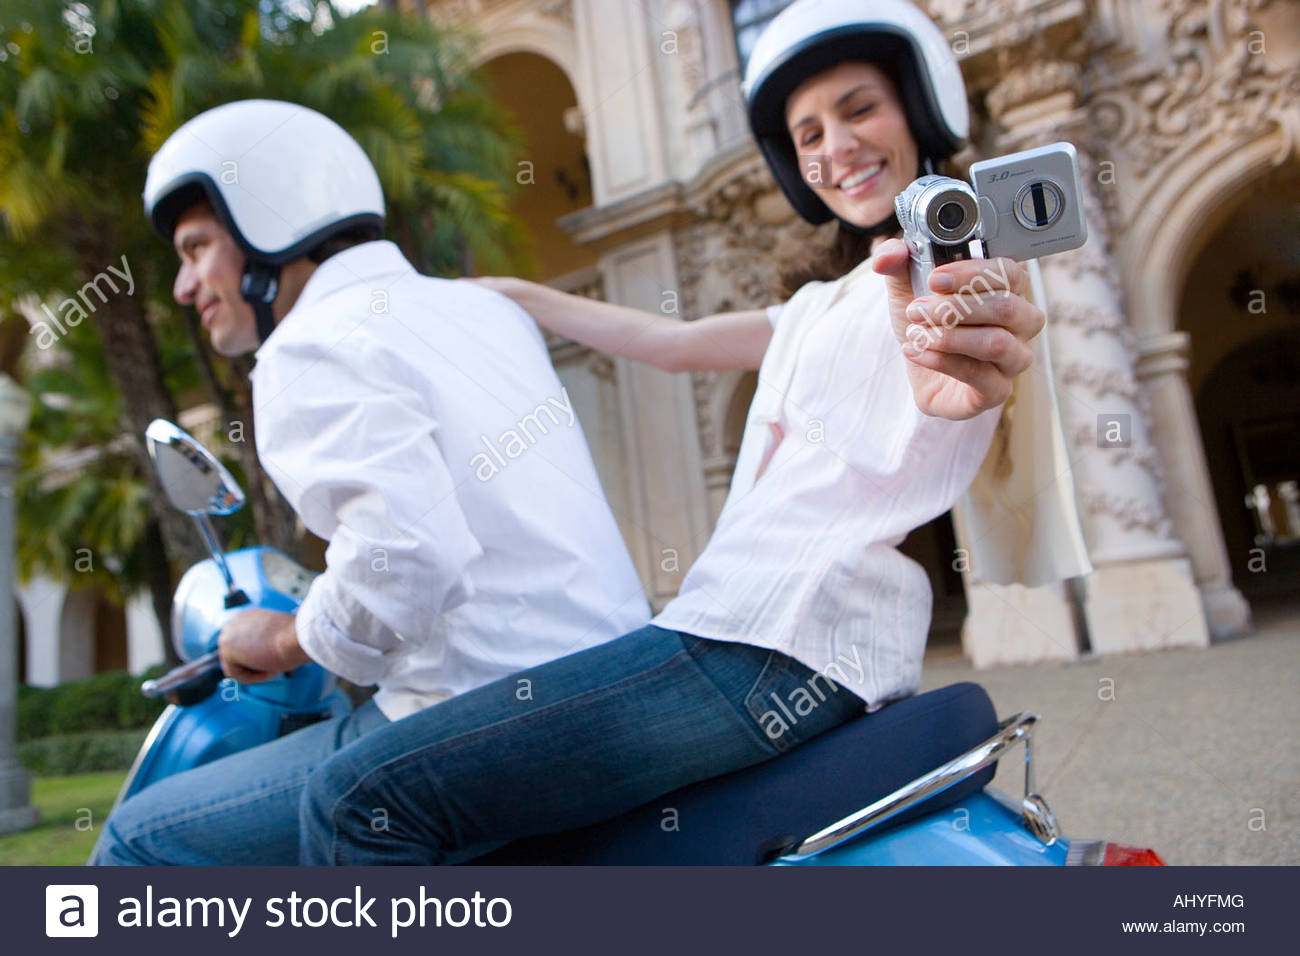 Couple riding on blue motor scooter, woman filming with video camera, smiling, side view, portrait tilt - Stock Image